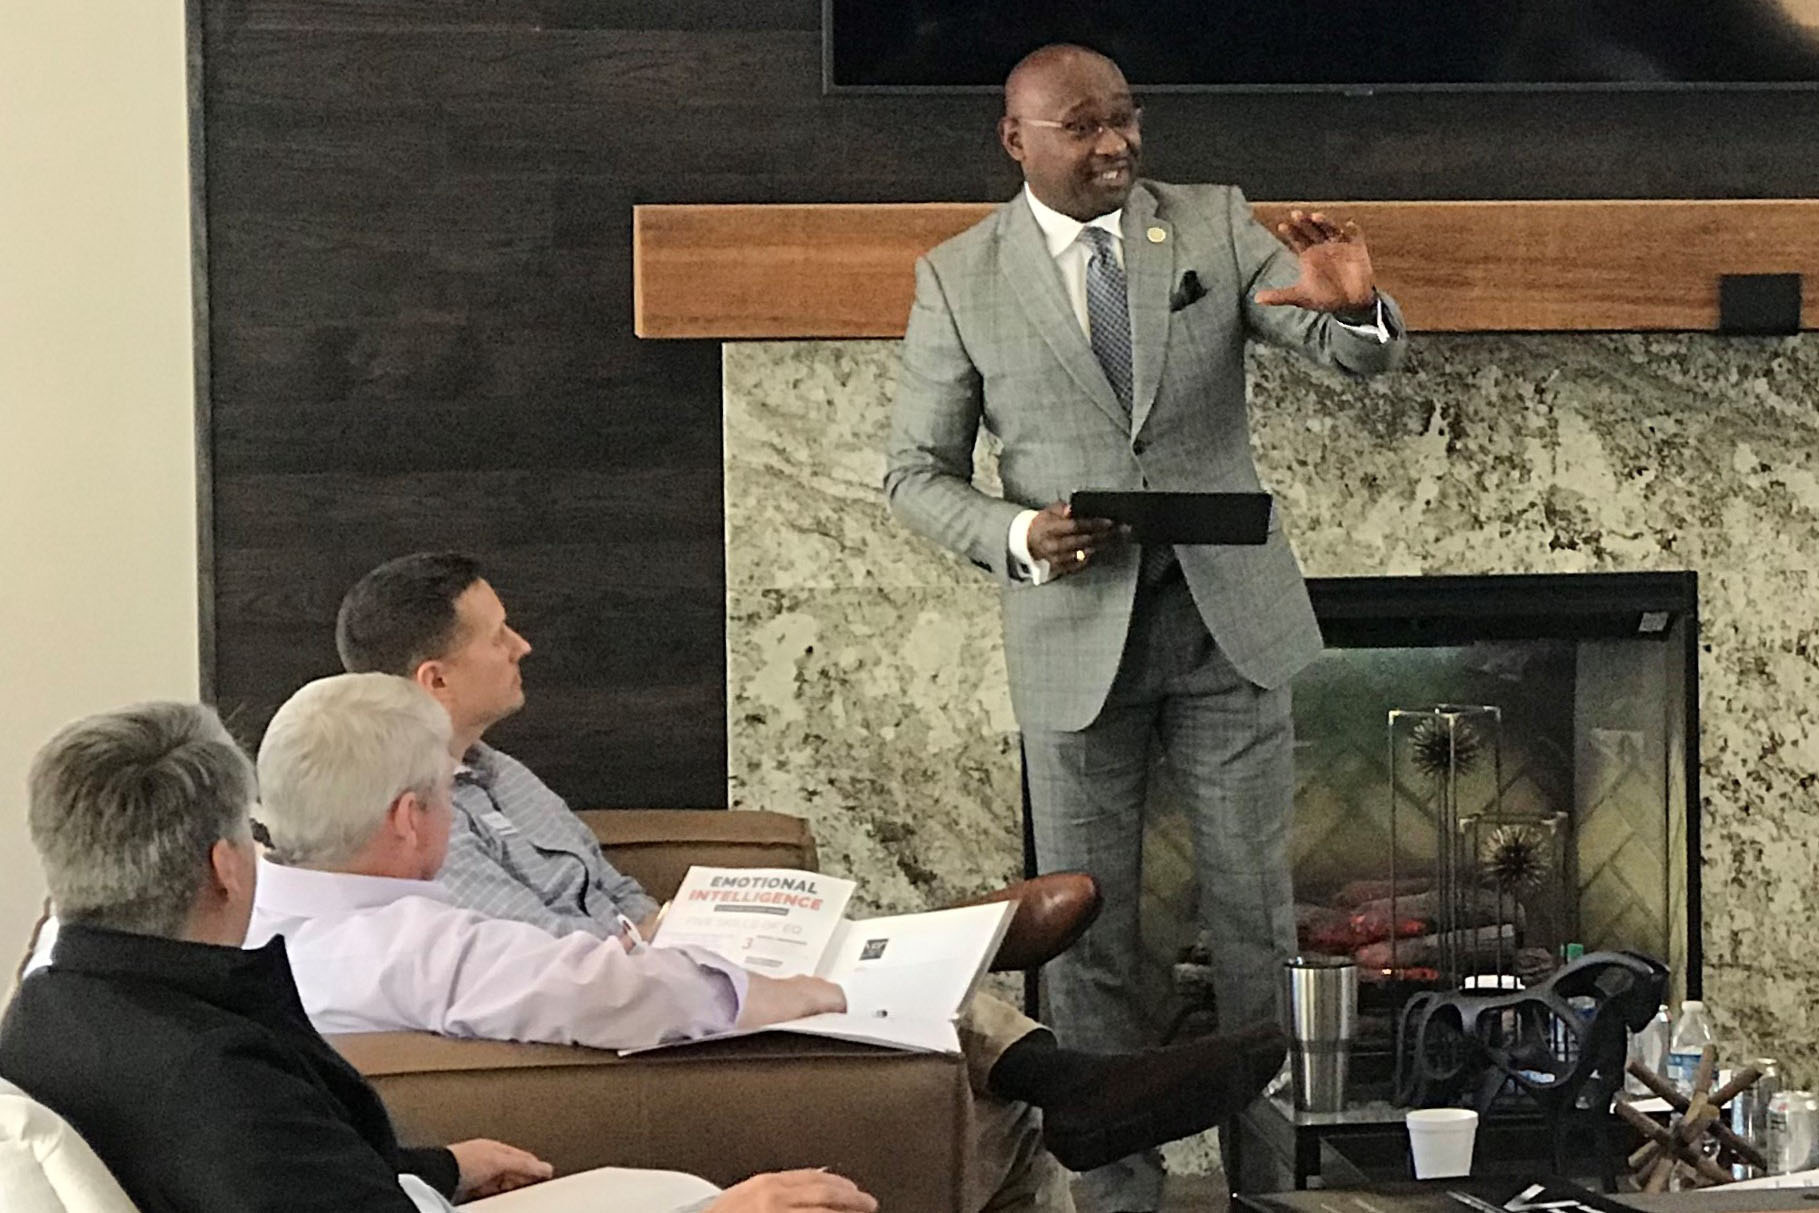 Caption: Karockas Watkins of the Huntsville/Madison Chamber of Commerce talks with the local board and staff of BancorpSouth in Hunstville, Alabama in 2020. Watkins heads the chamber's task force on diversity, equity. and inclusion., Credit: Courtesy Karockas Watkins